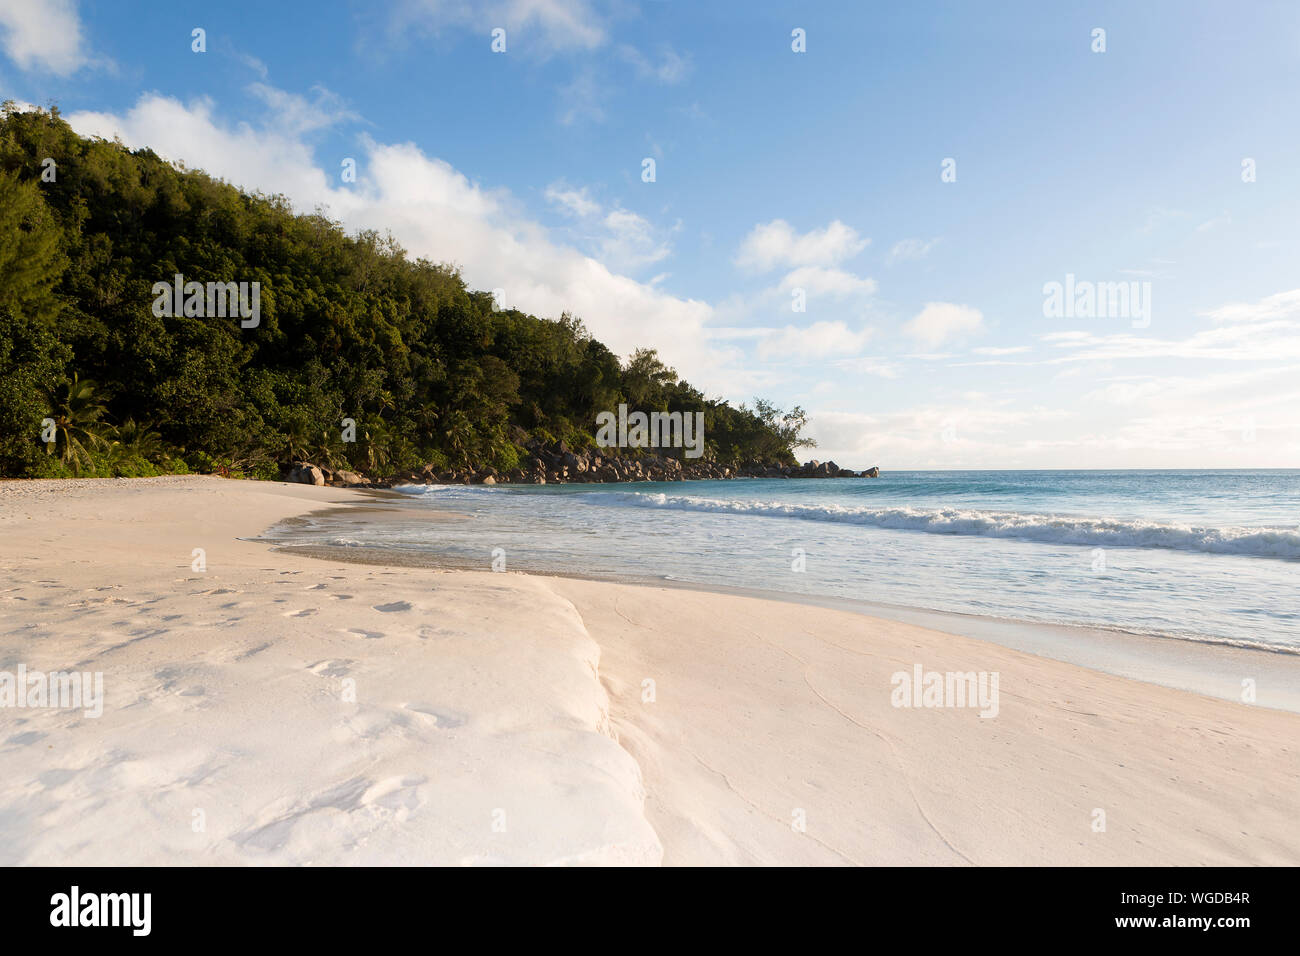 Beach panorama at the Ocean, Seychelles islands Stock Photo